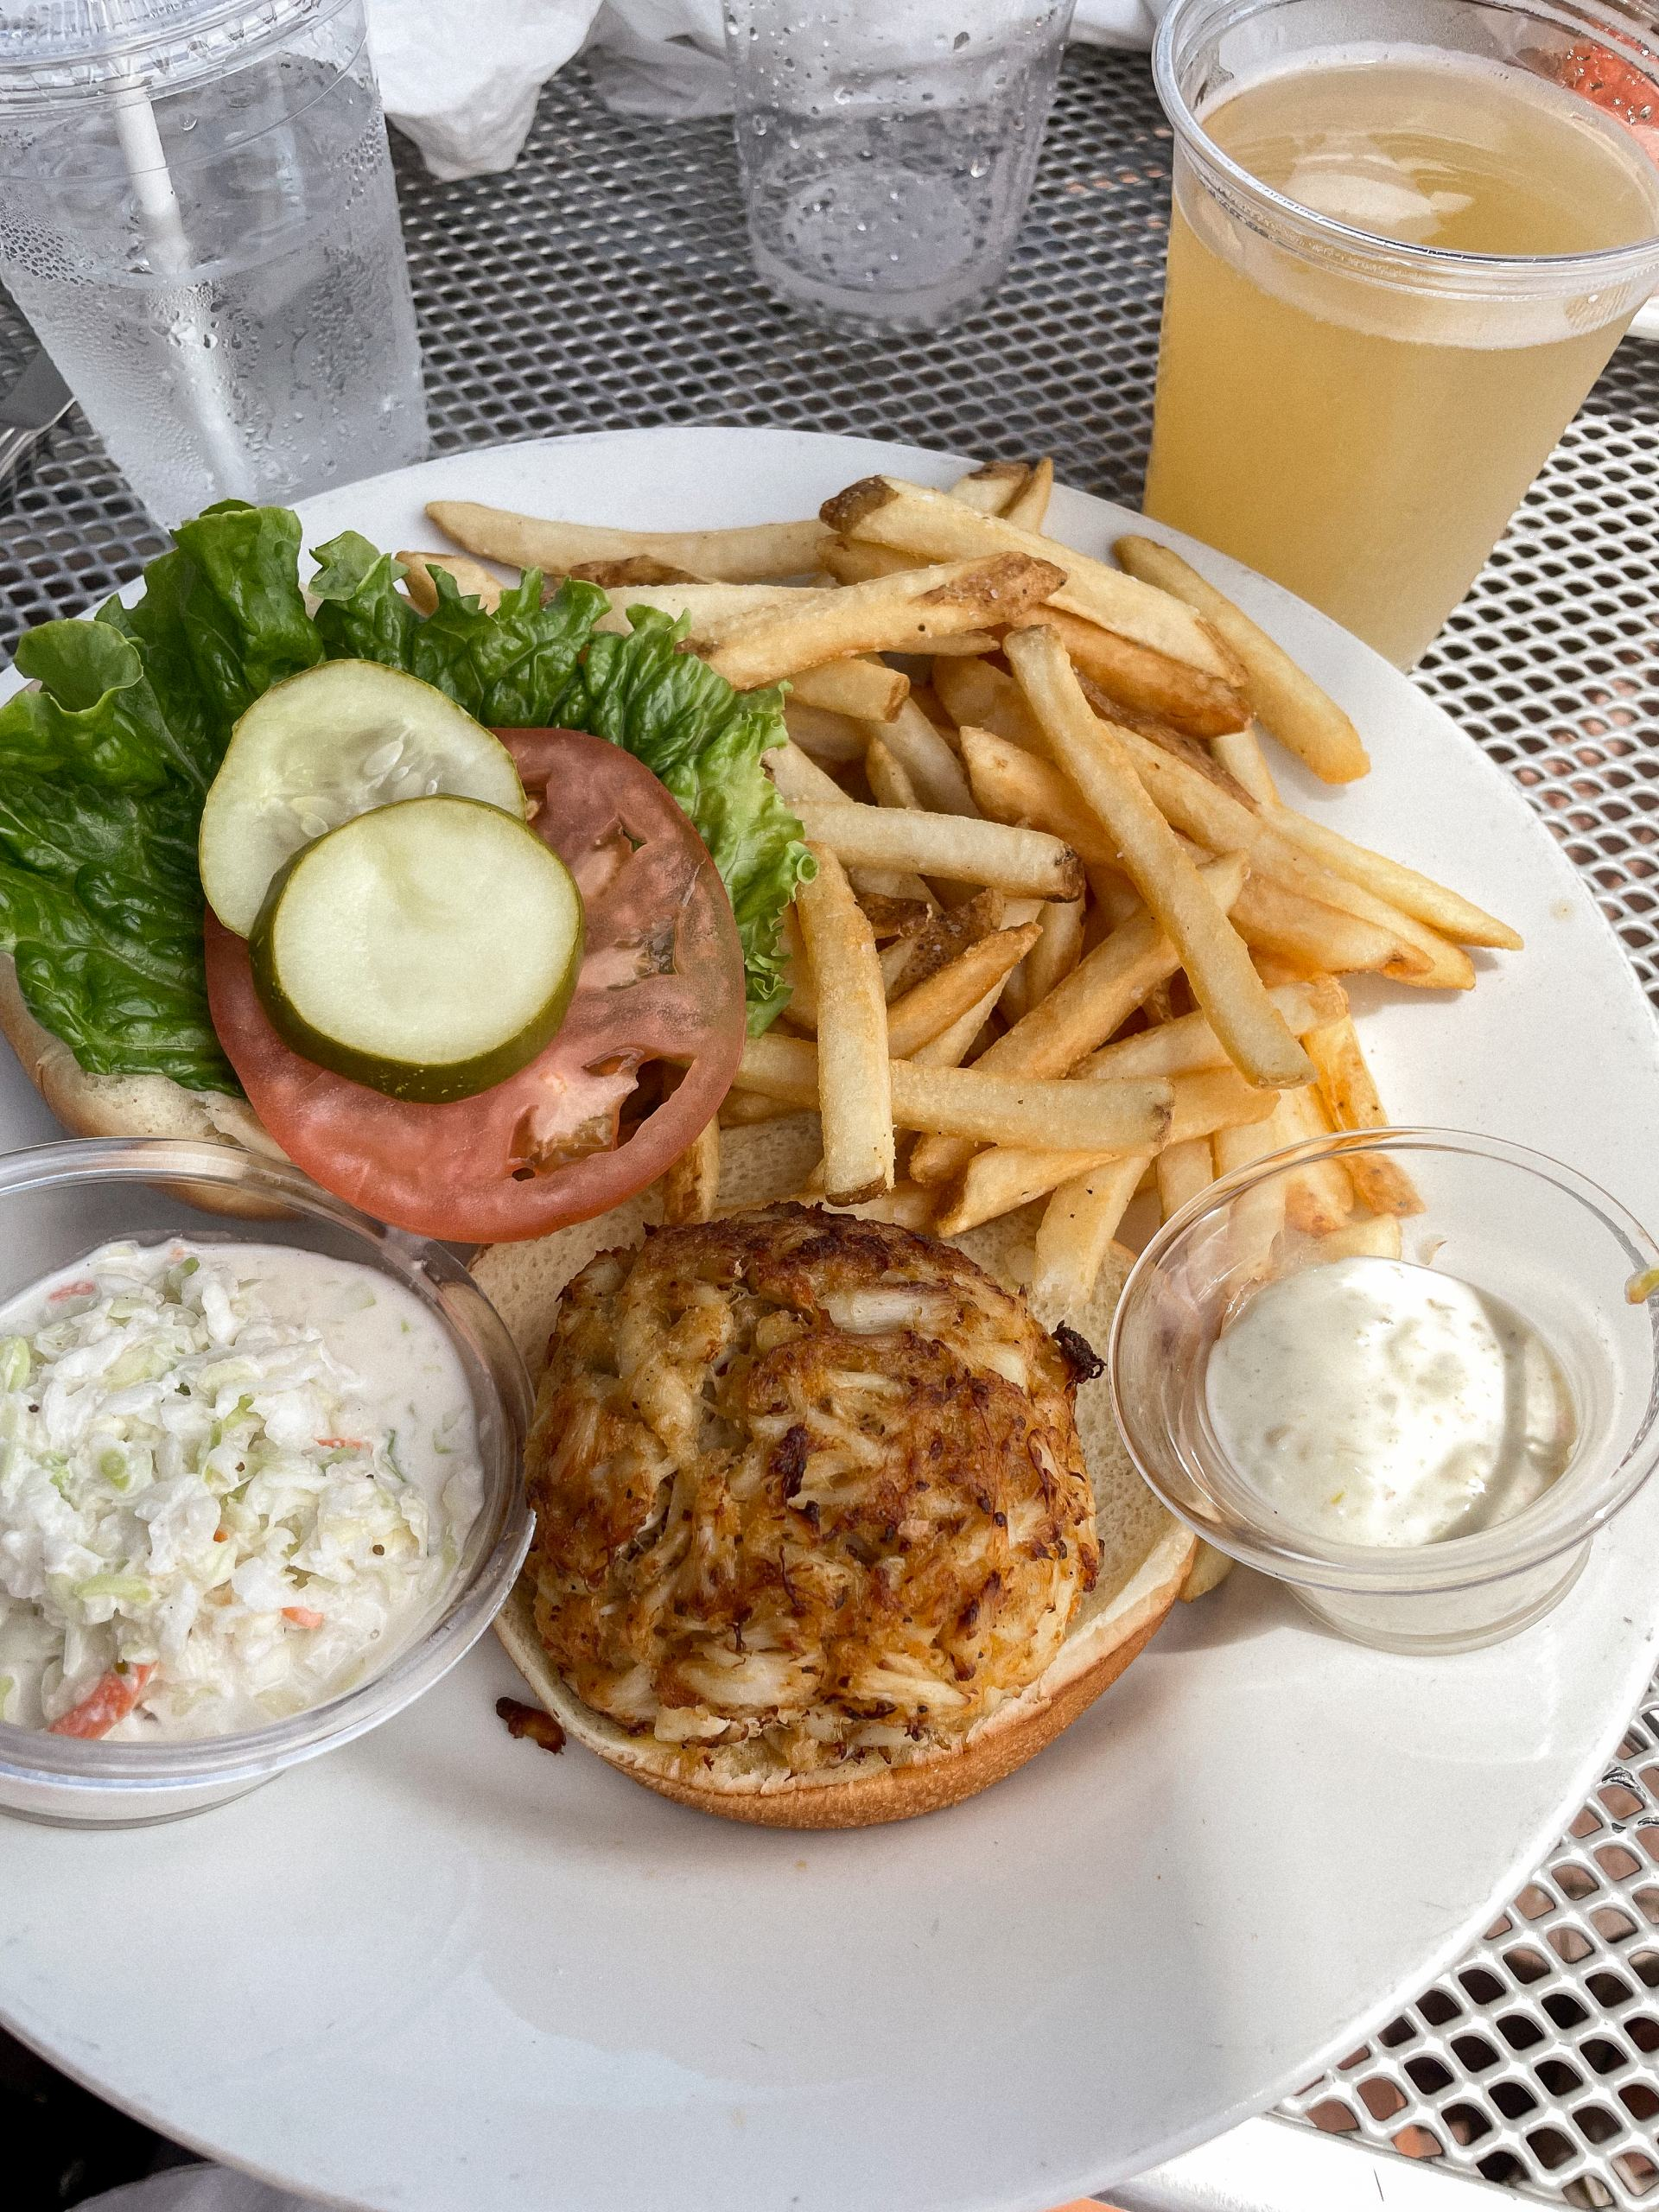 Tony and Joes crab cake sandwich